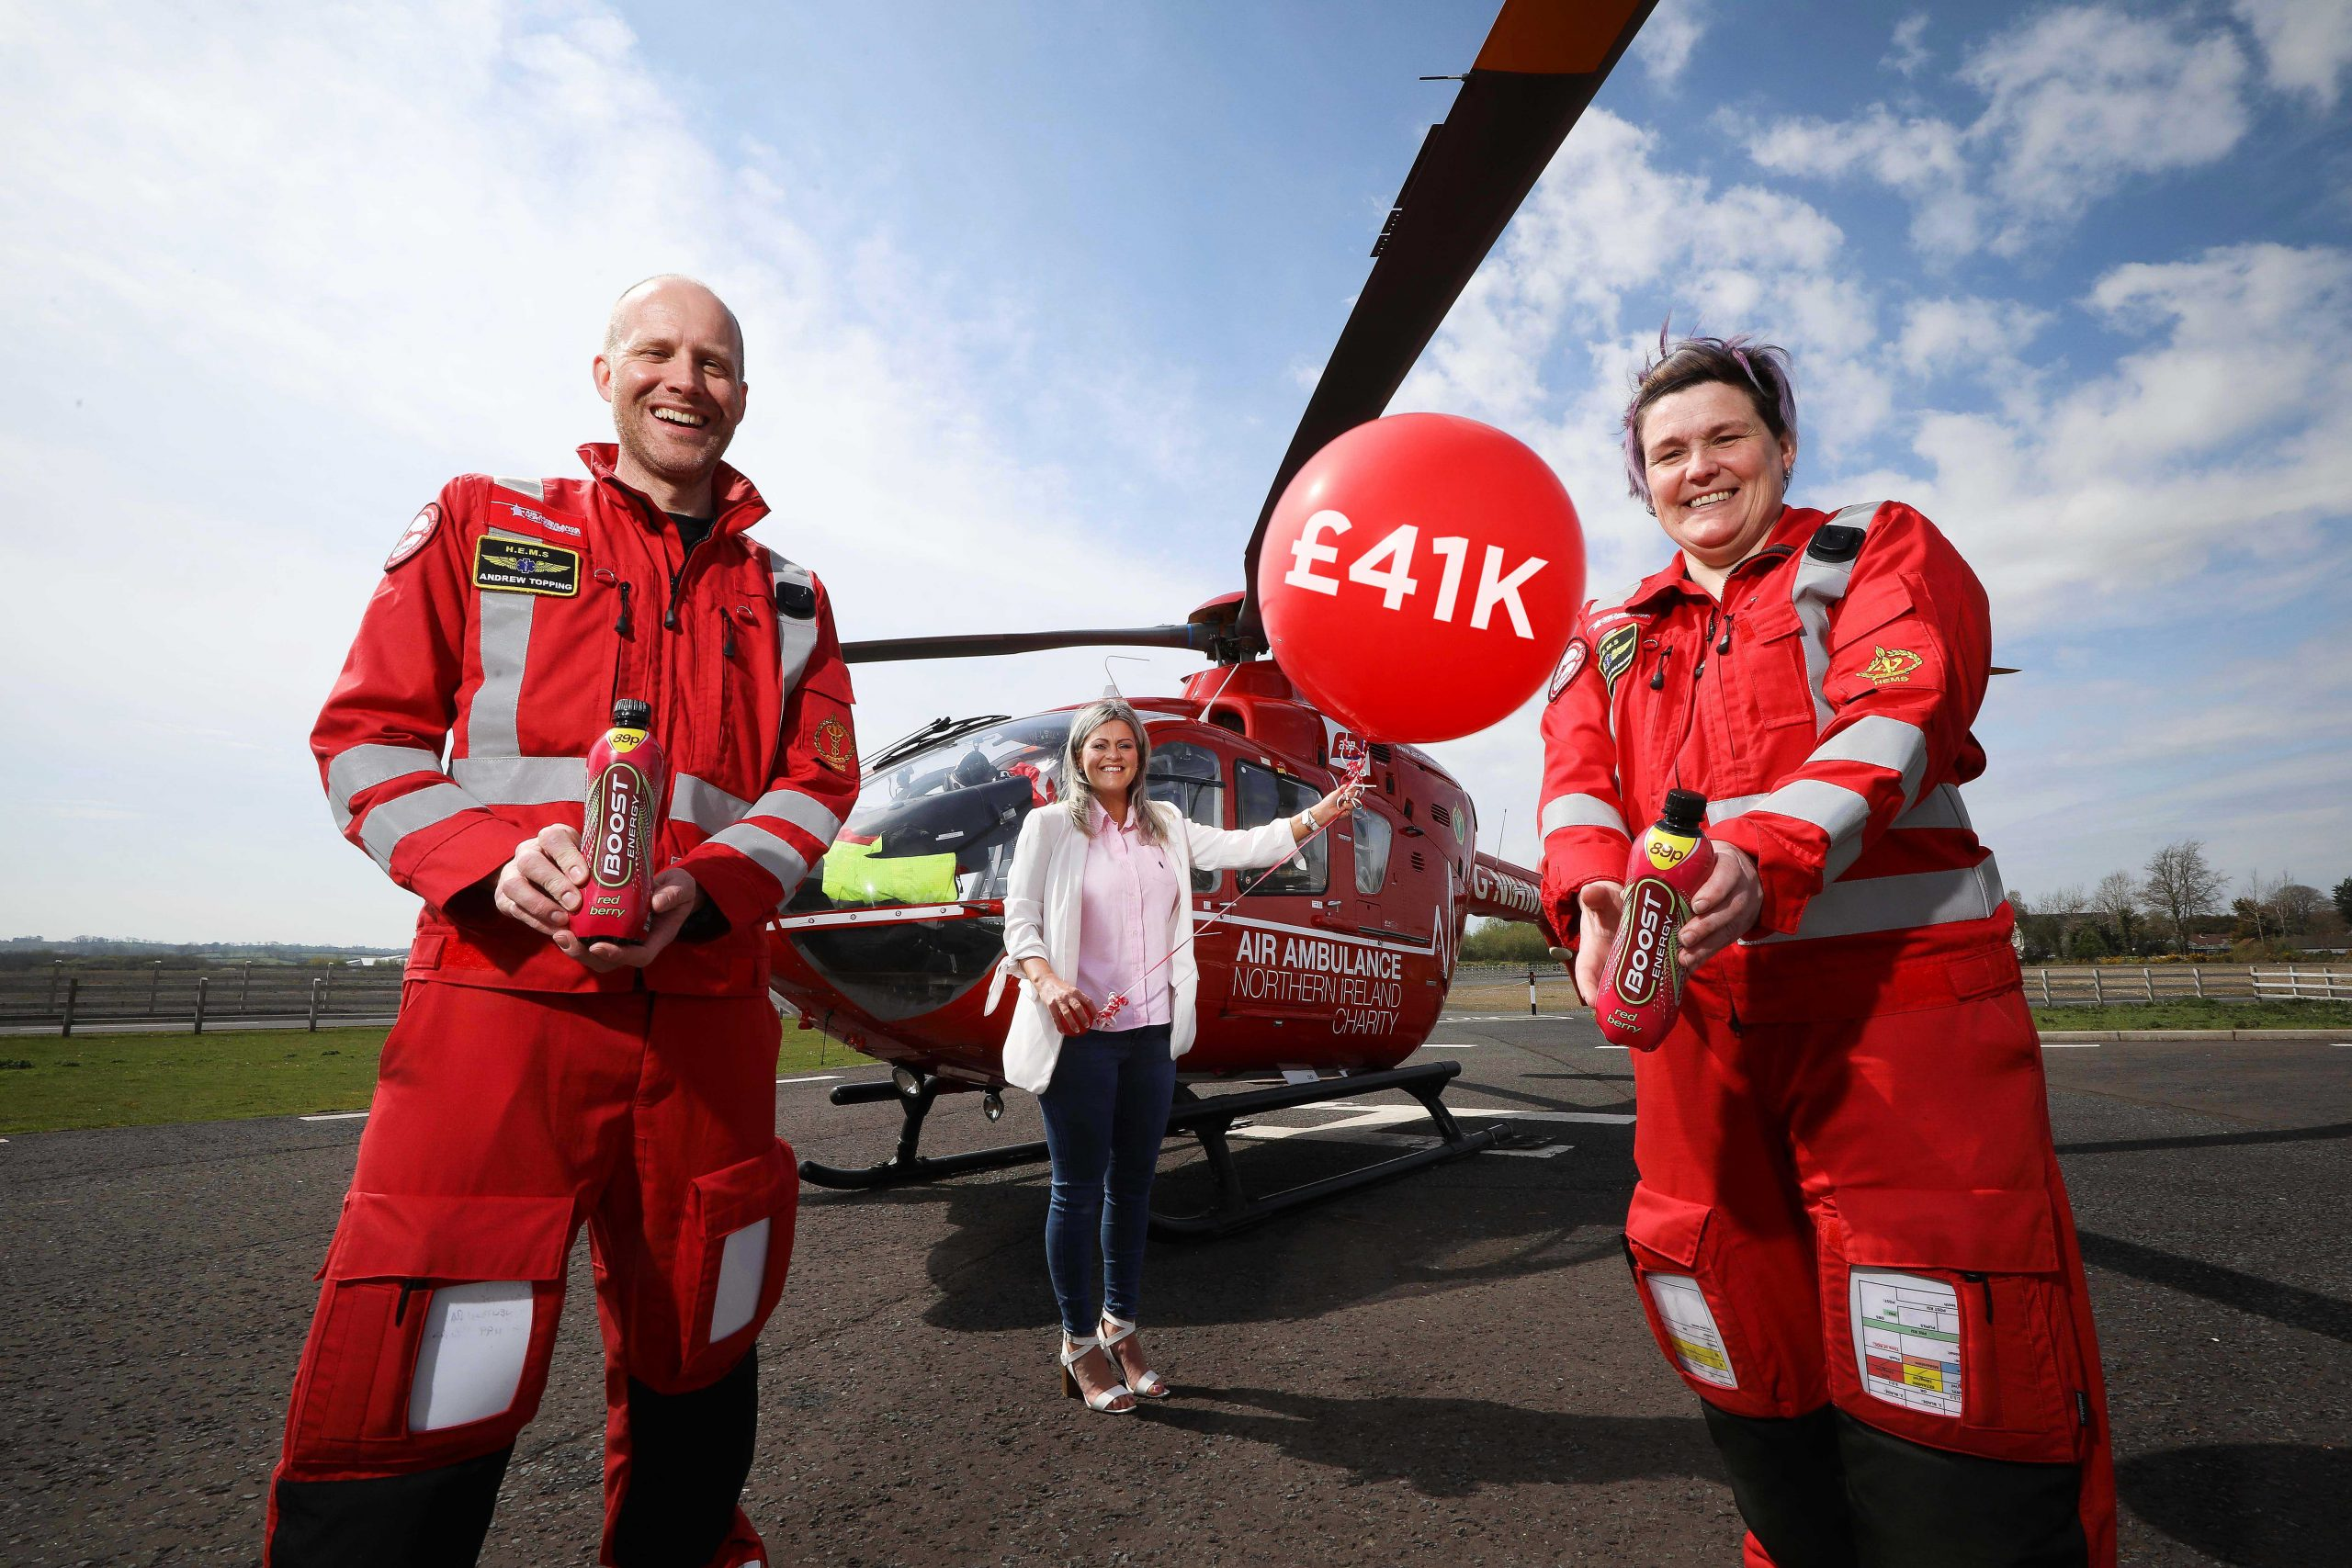 Big Boost for the Air Ambulance – Over £41k raised by Boost Drinks